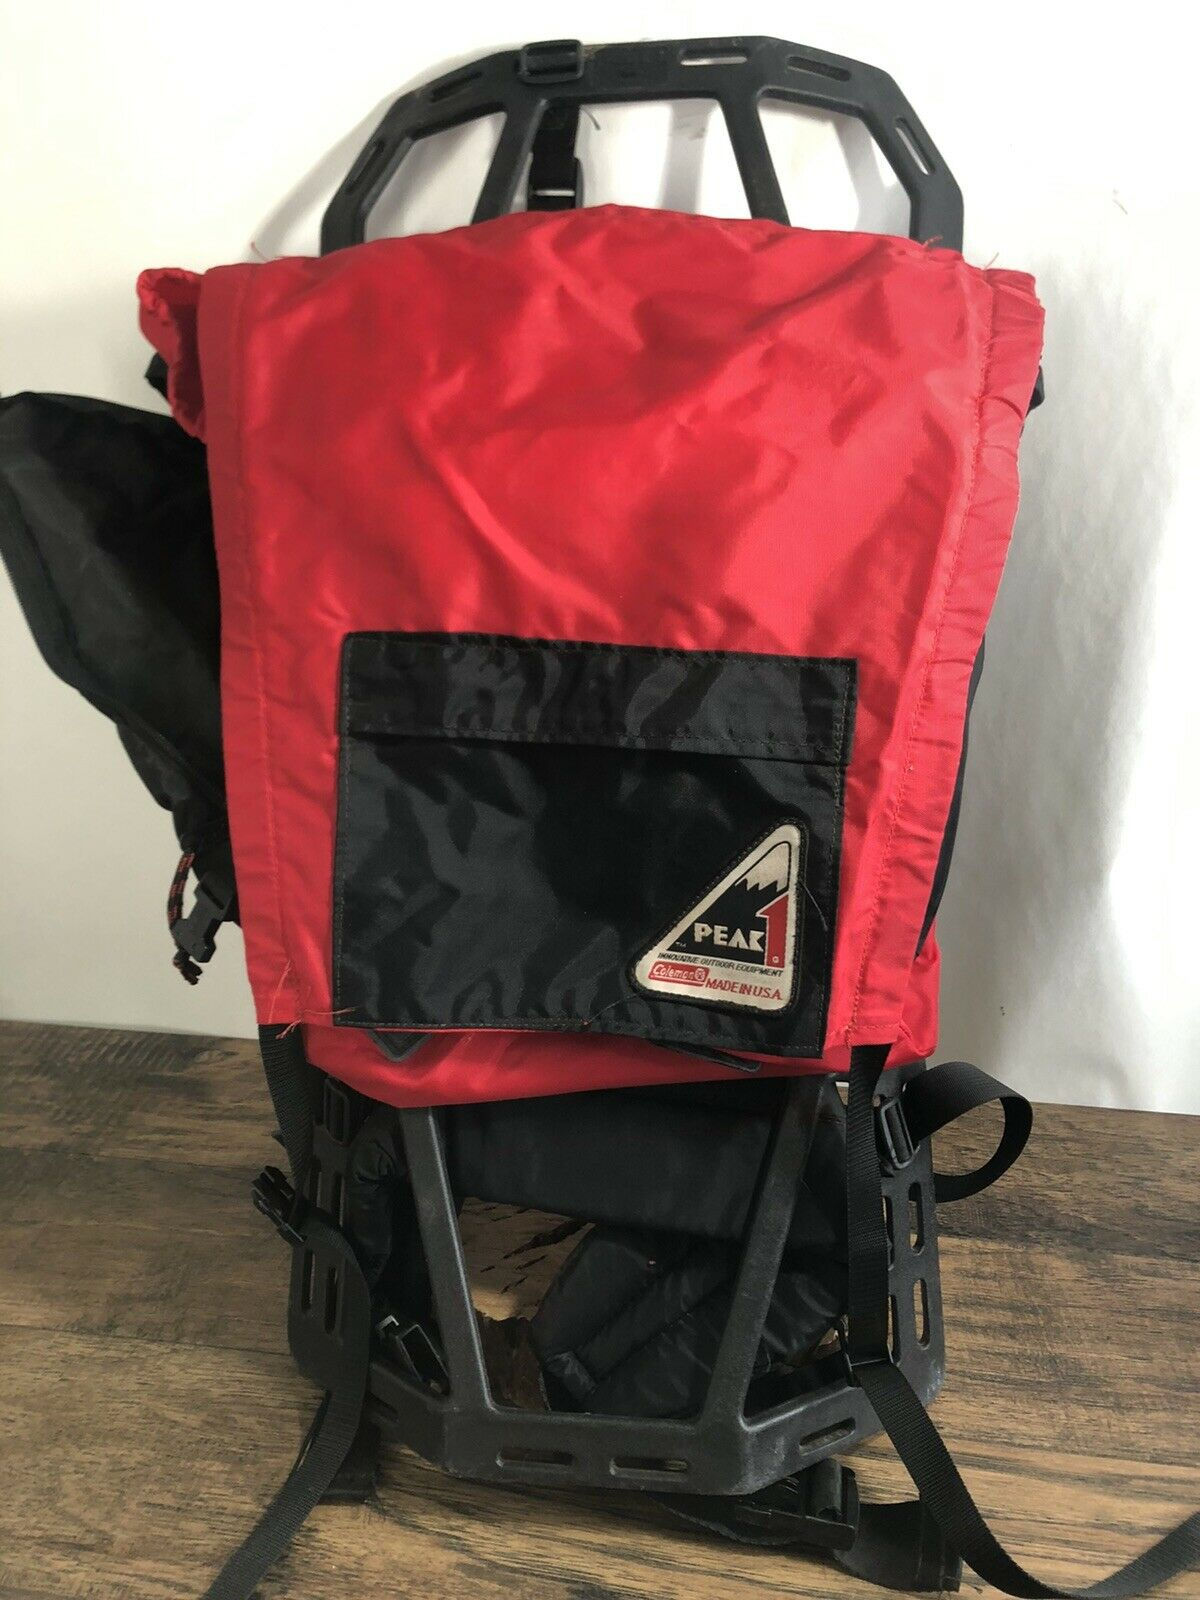 VINTAGE Peak 1 Coleman Outdoor Hiking Backpack rot with zippers camping E2